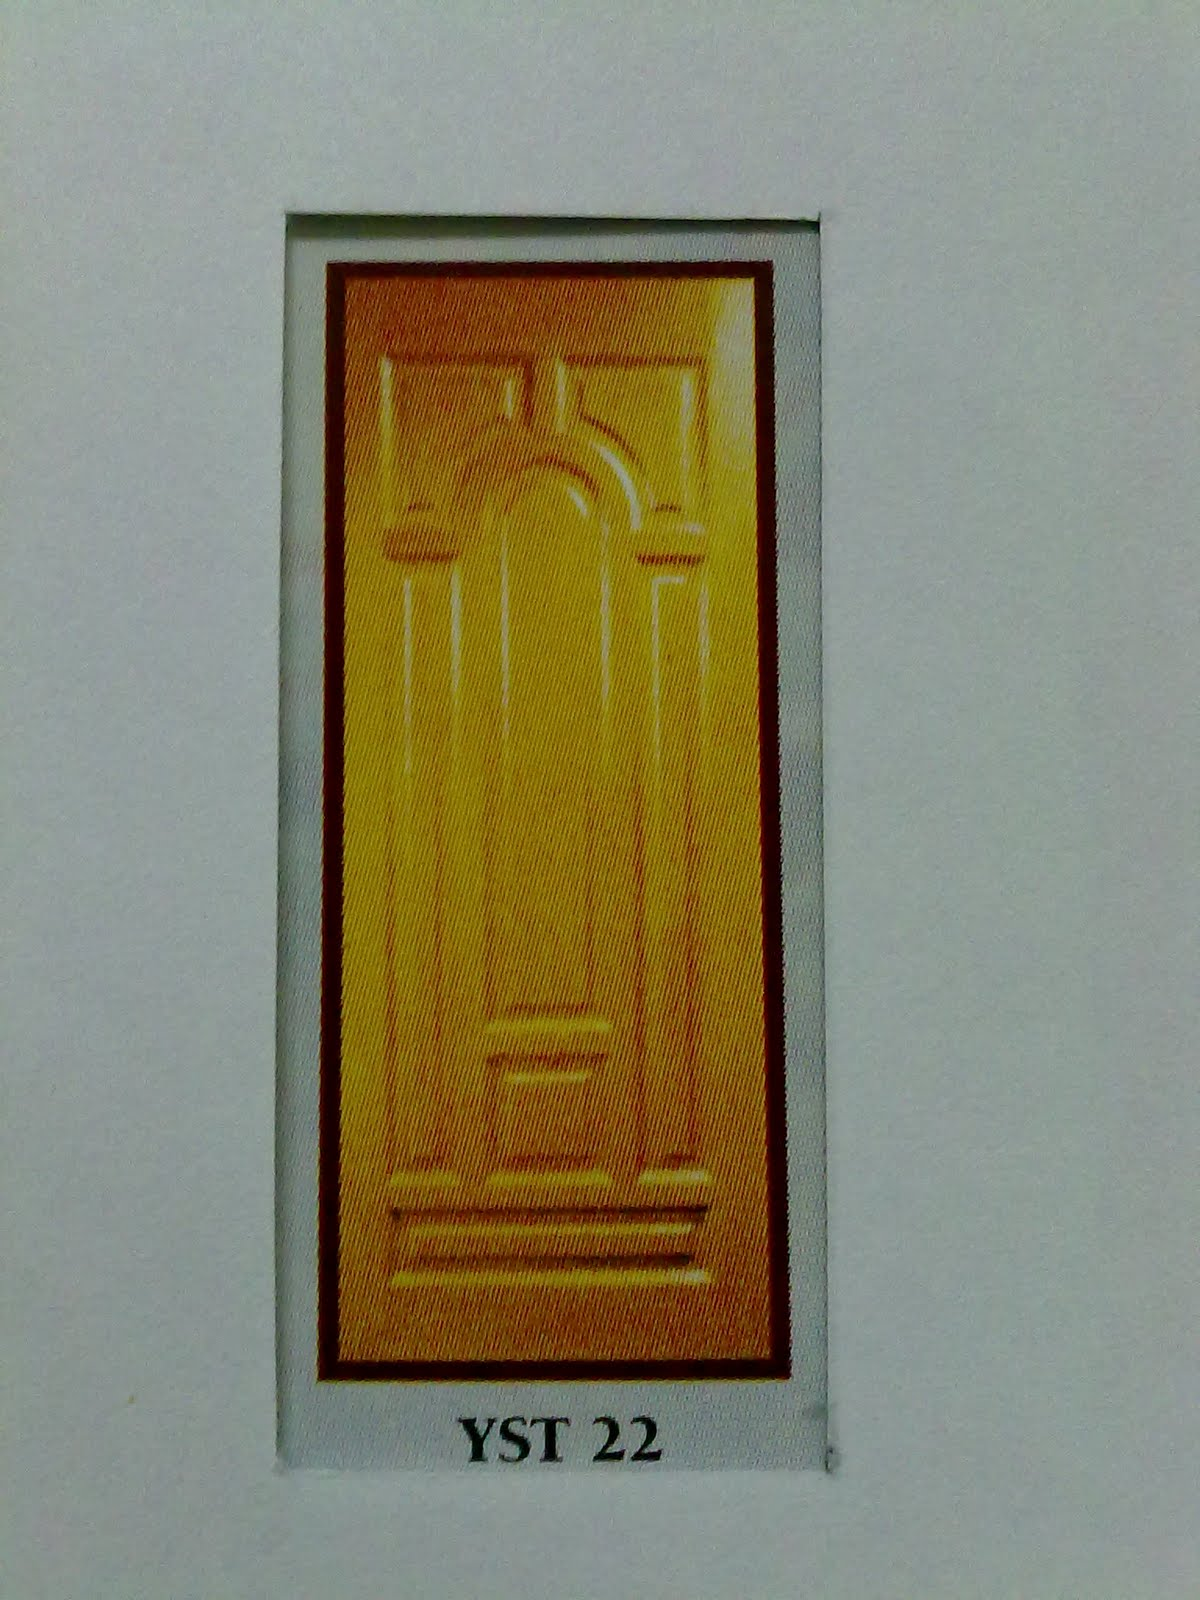 Masharum wooden doors windows masharum wooden door for Wood doors and windows